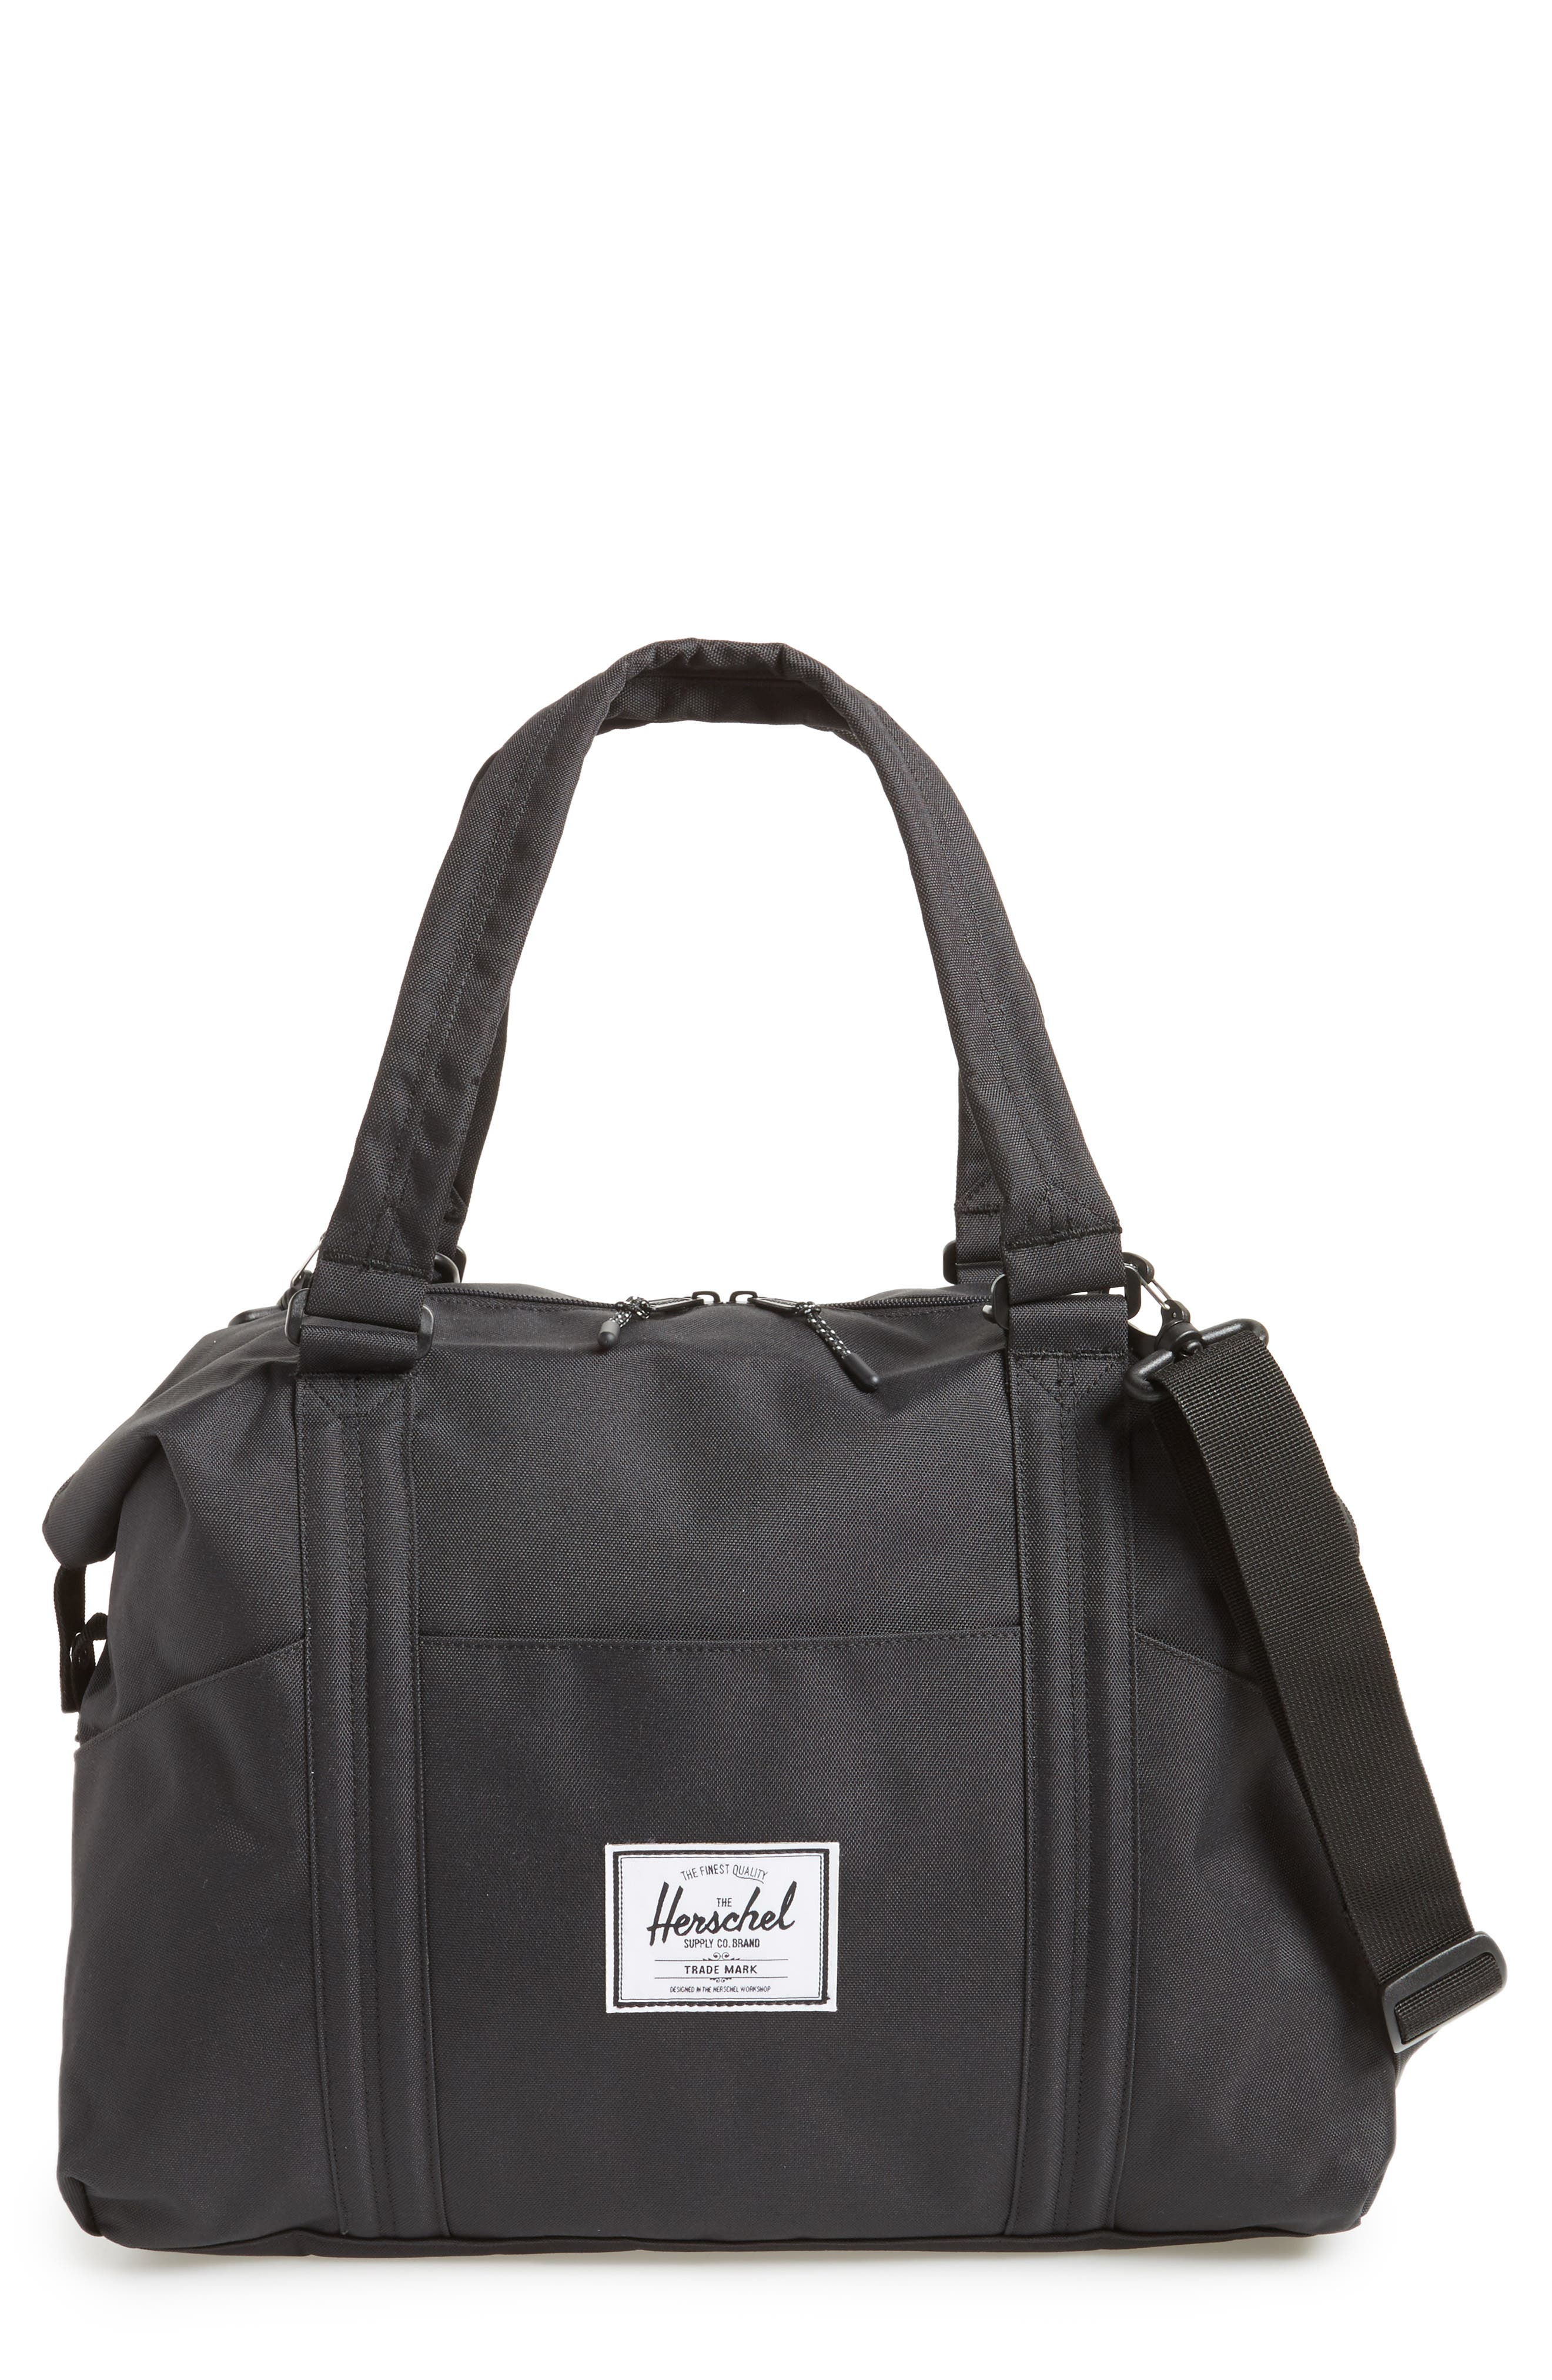 HERSCHEL SUPPLY CO. Sprout Diaper Bag, Main, color, 001